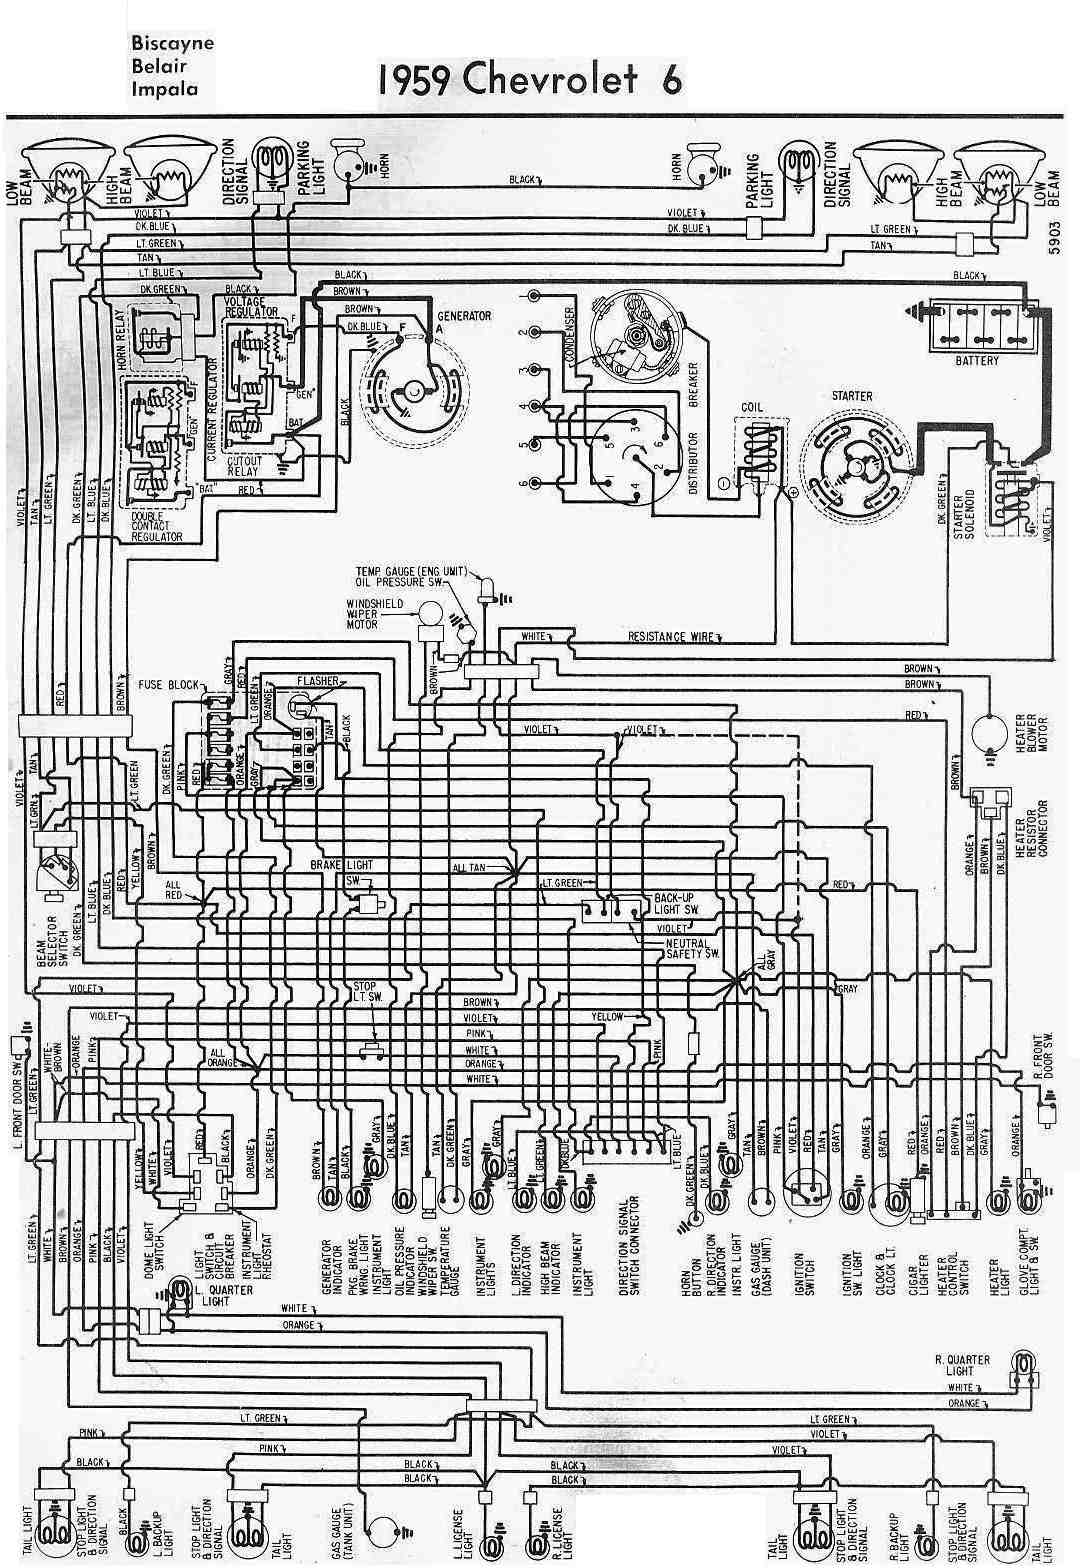 Chevrolet 6 Biscayne  Belair  Impala 1959 Complete Wiring Diagram